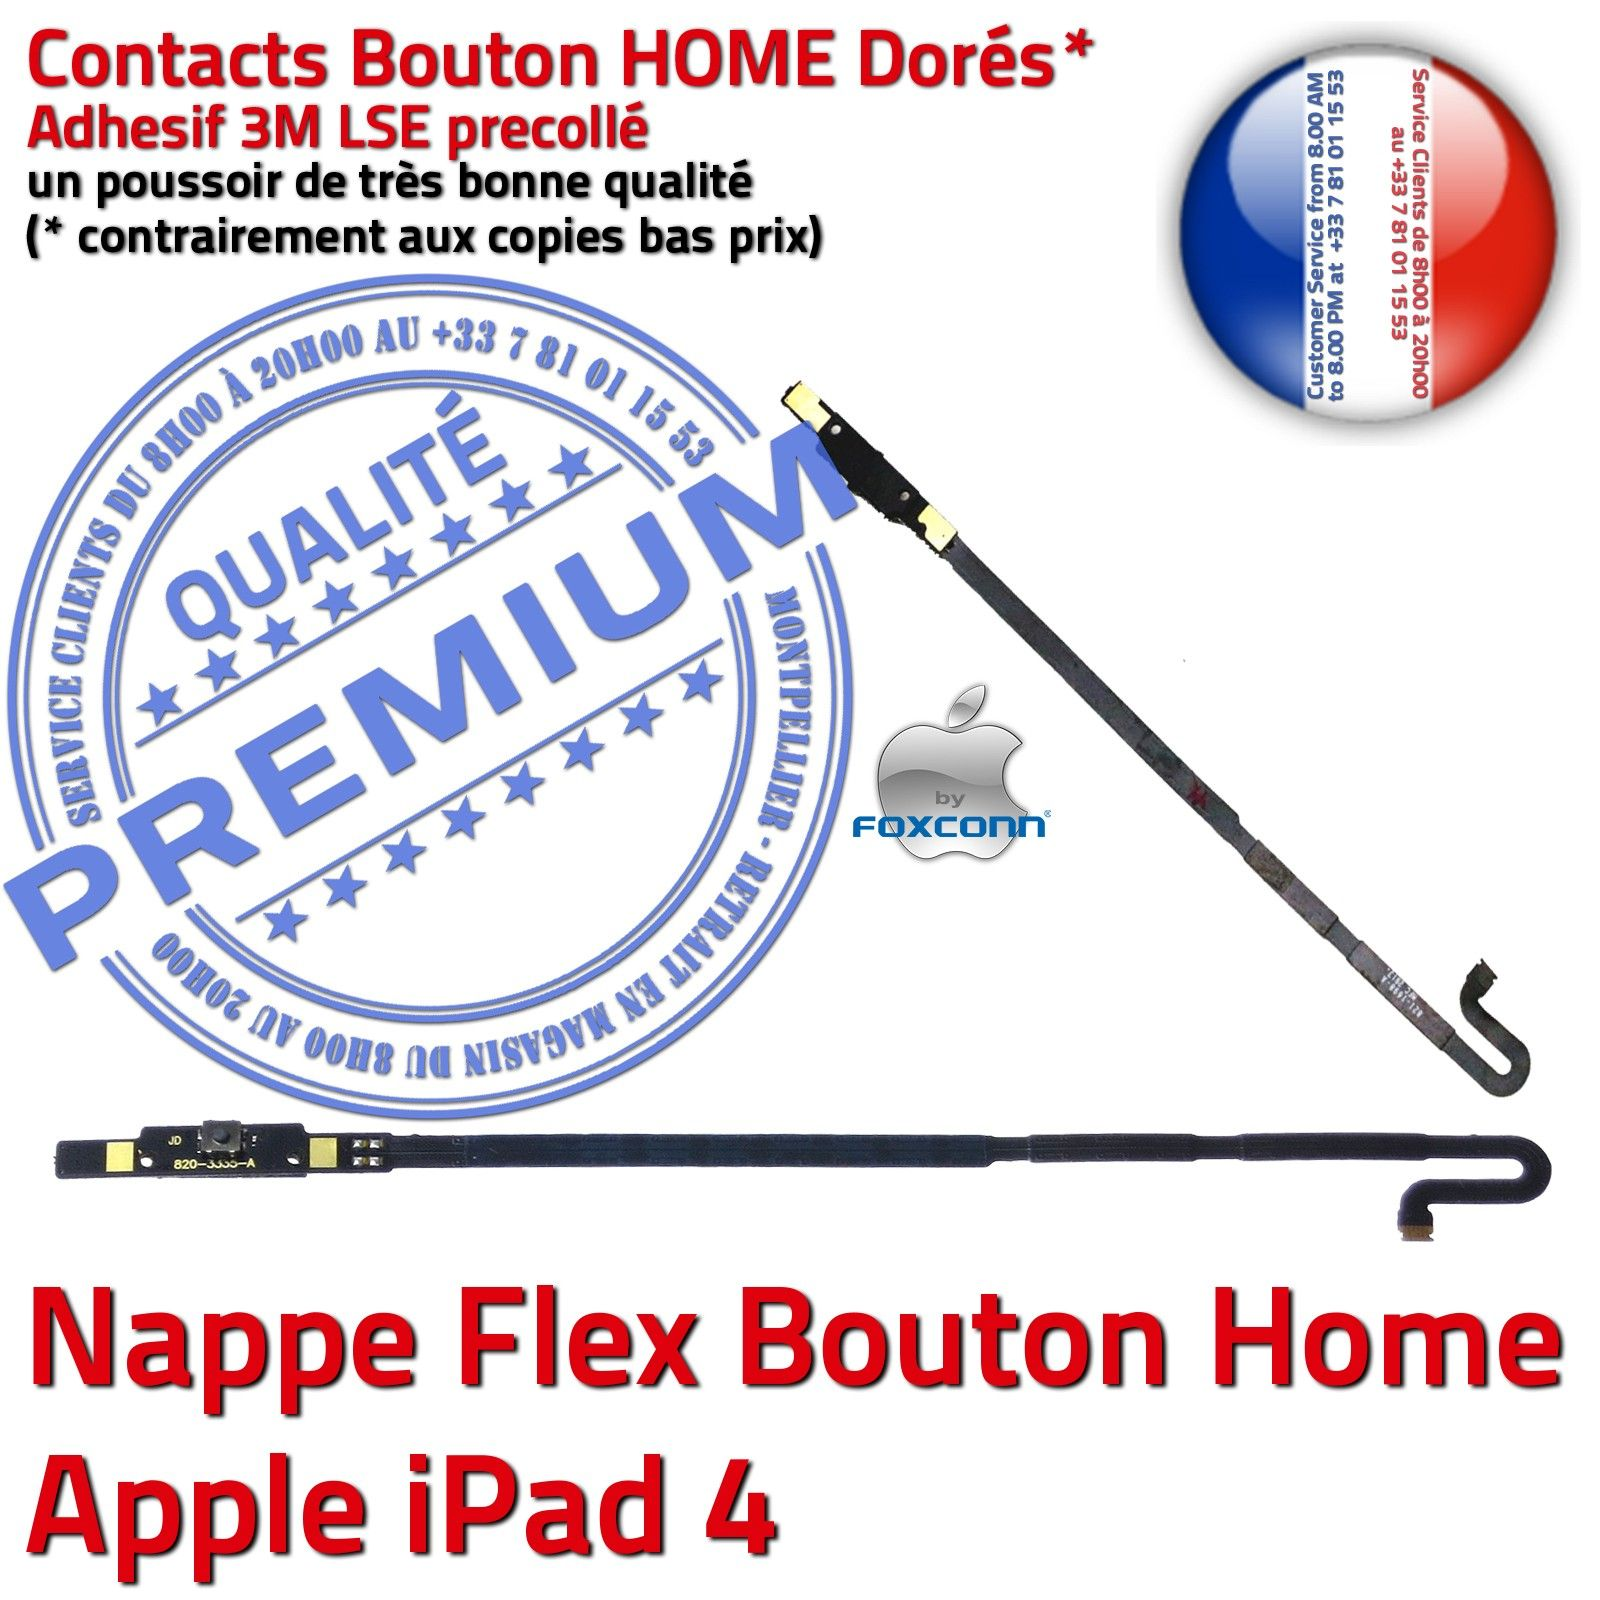 kit vitre tactile ipad4 a1458 blanc cran verre outils joint nappe bouton home ebay. Black Bedroom Furniture Sets. Home Design Ideas